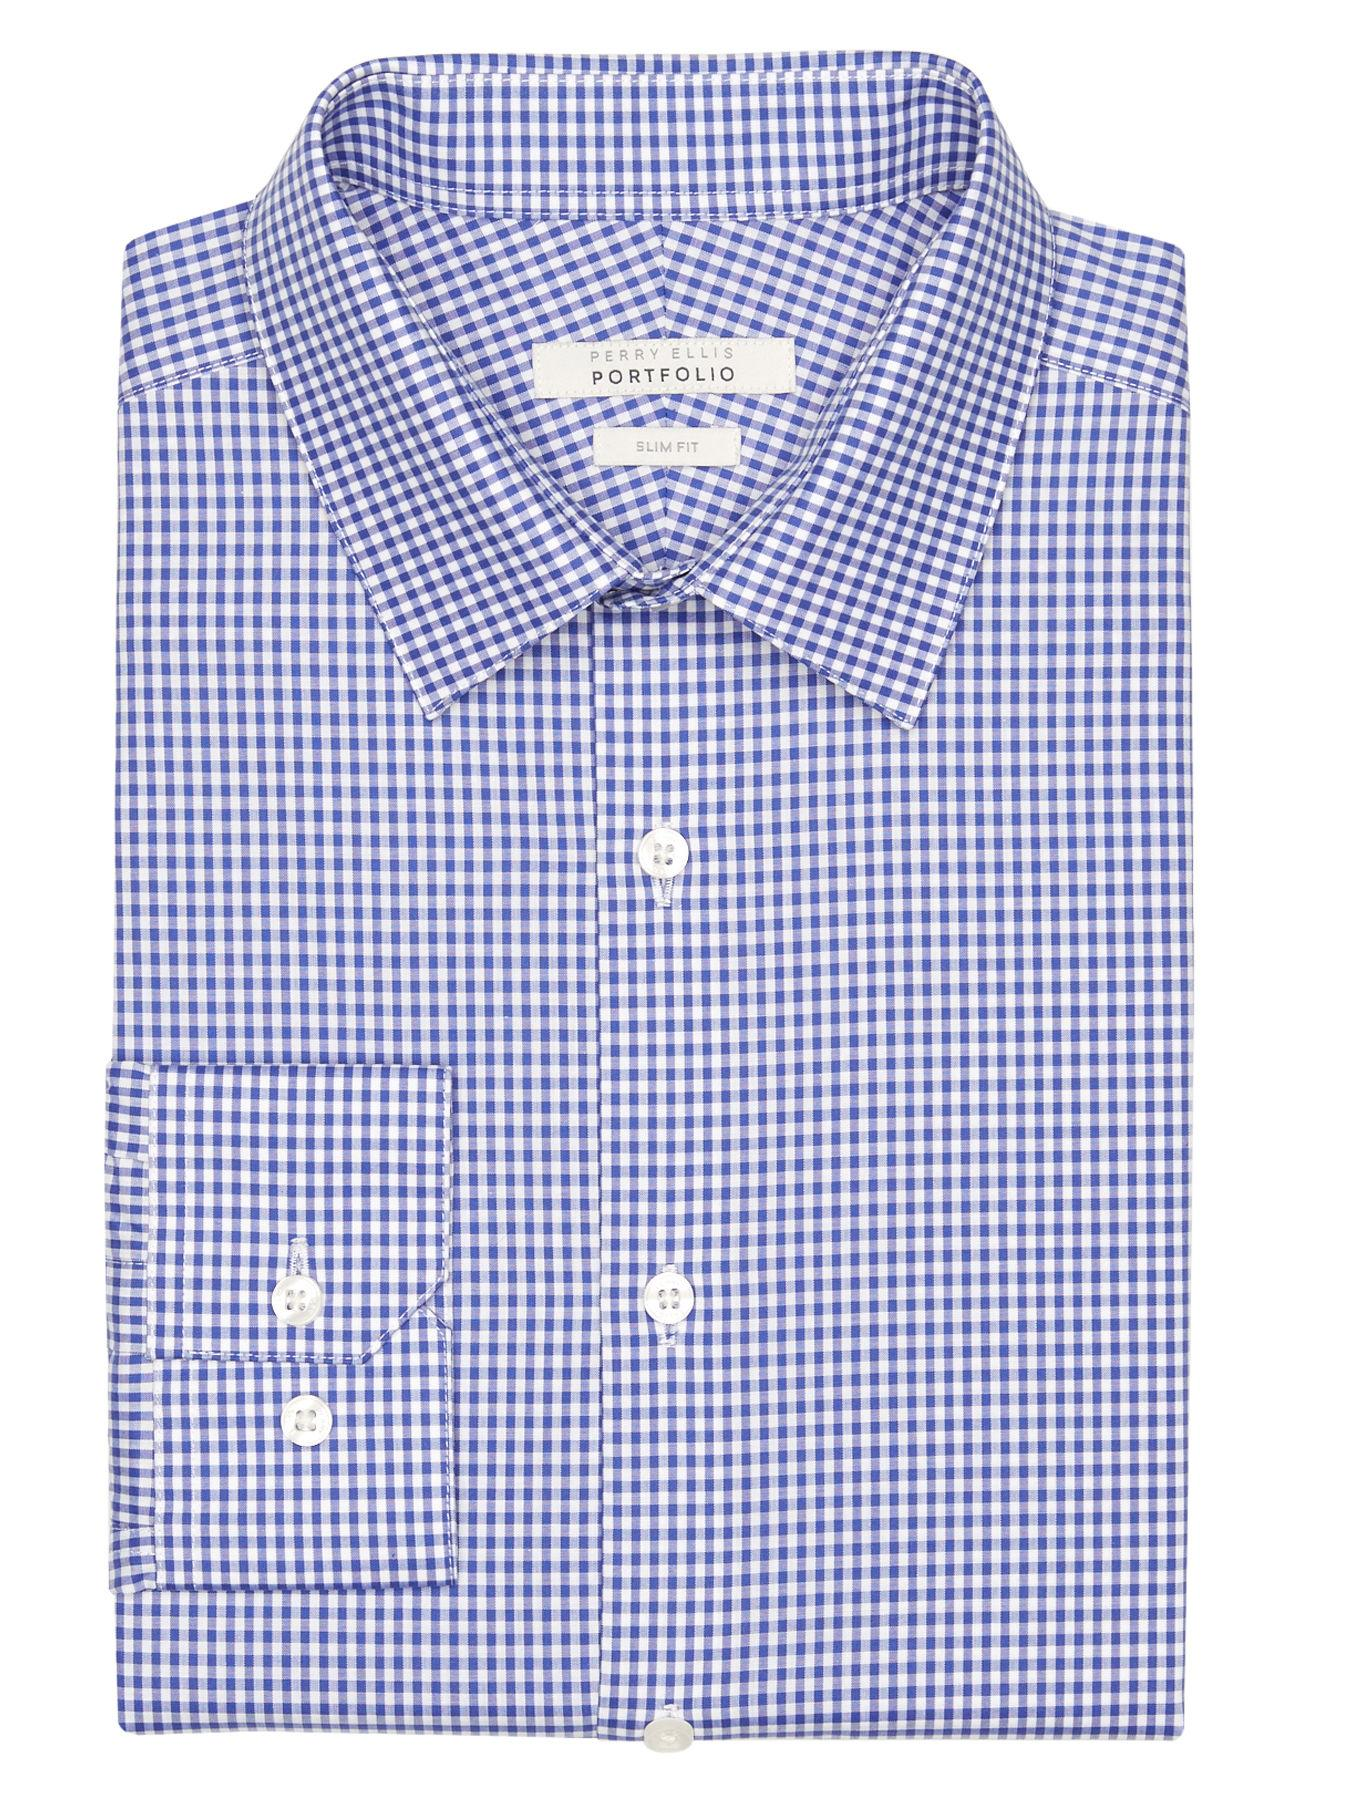 731b7759cc79 Lyst - Perry Ellis Slim Fit Coastal Gingham Dress Shirt in Blue for Men